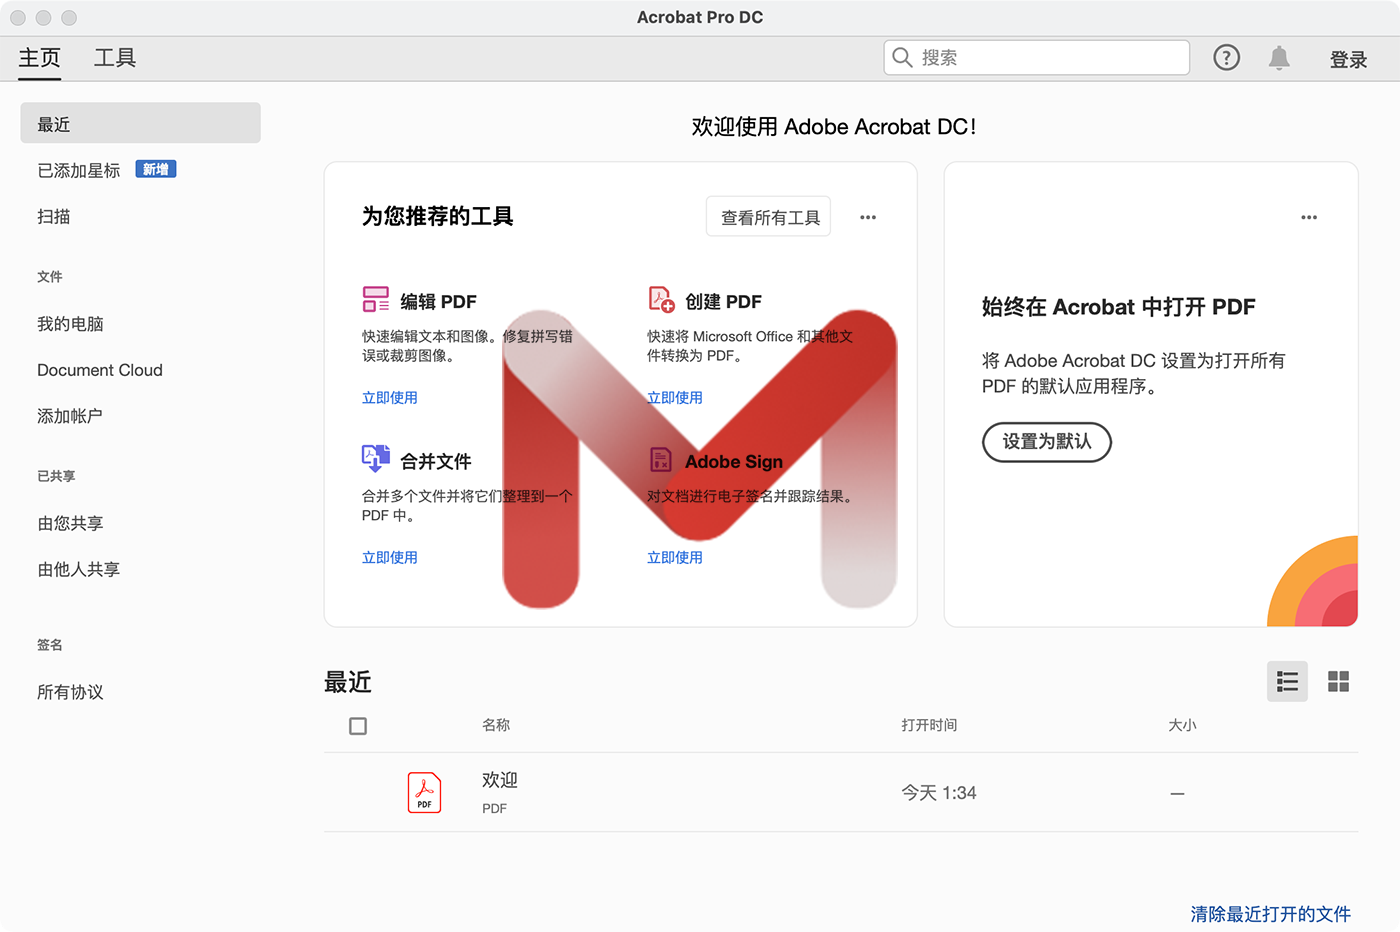 Adobe Acrobat Pro DC 2021 for Mac 中文破解版